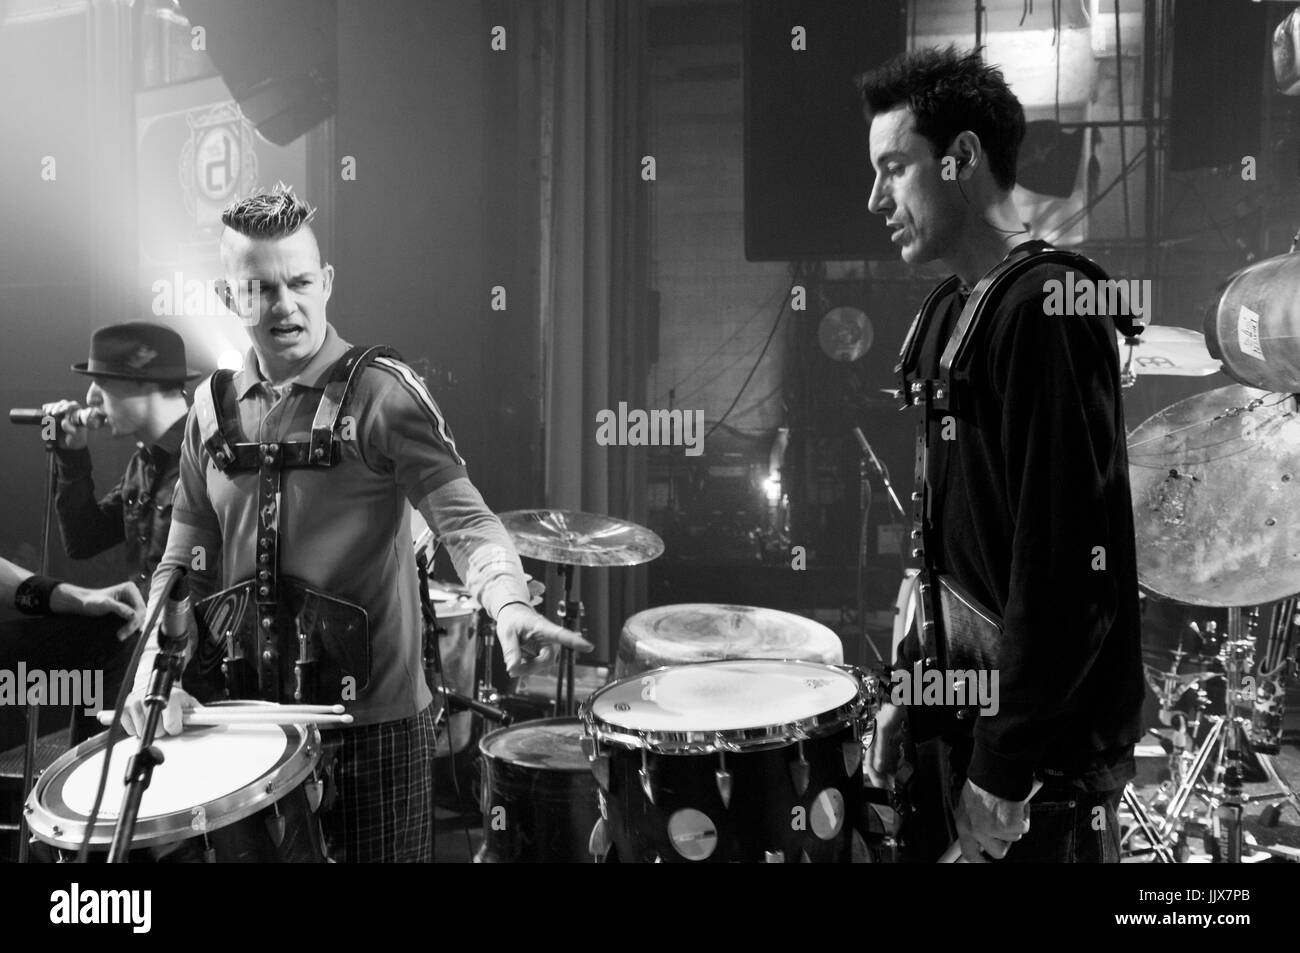 Adrian Young (l) No Doubt Byron McMackin (r) Pennywise Guitar Center Drum-Off Henry Fonda Theatre Los Angeles,Ca. - Stock Image